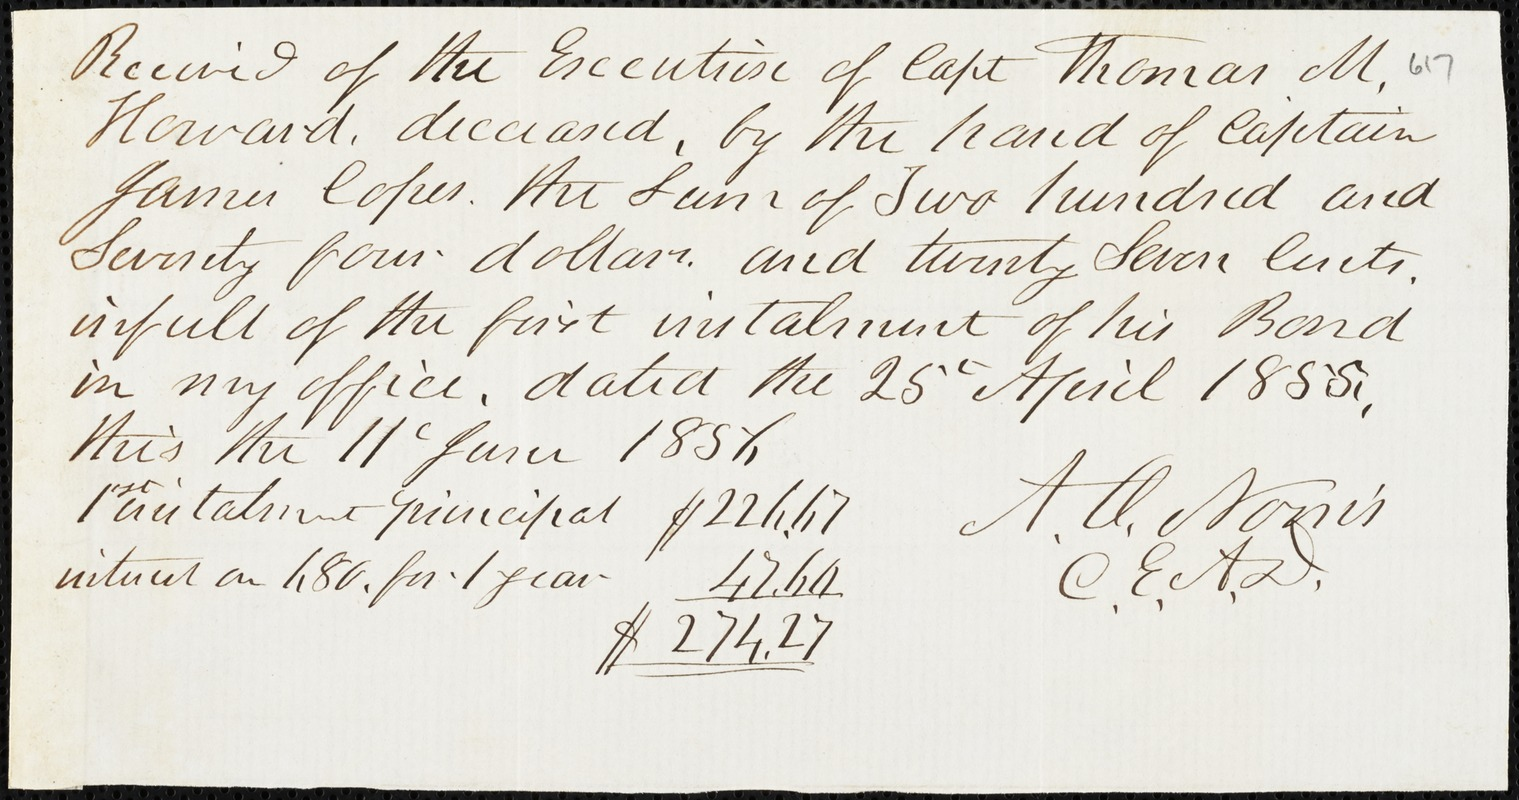 A.O. Norris, [Charleston, S.C.?], autograph document signed to Ziba B. Oakes, 11 June 1856